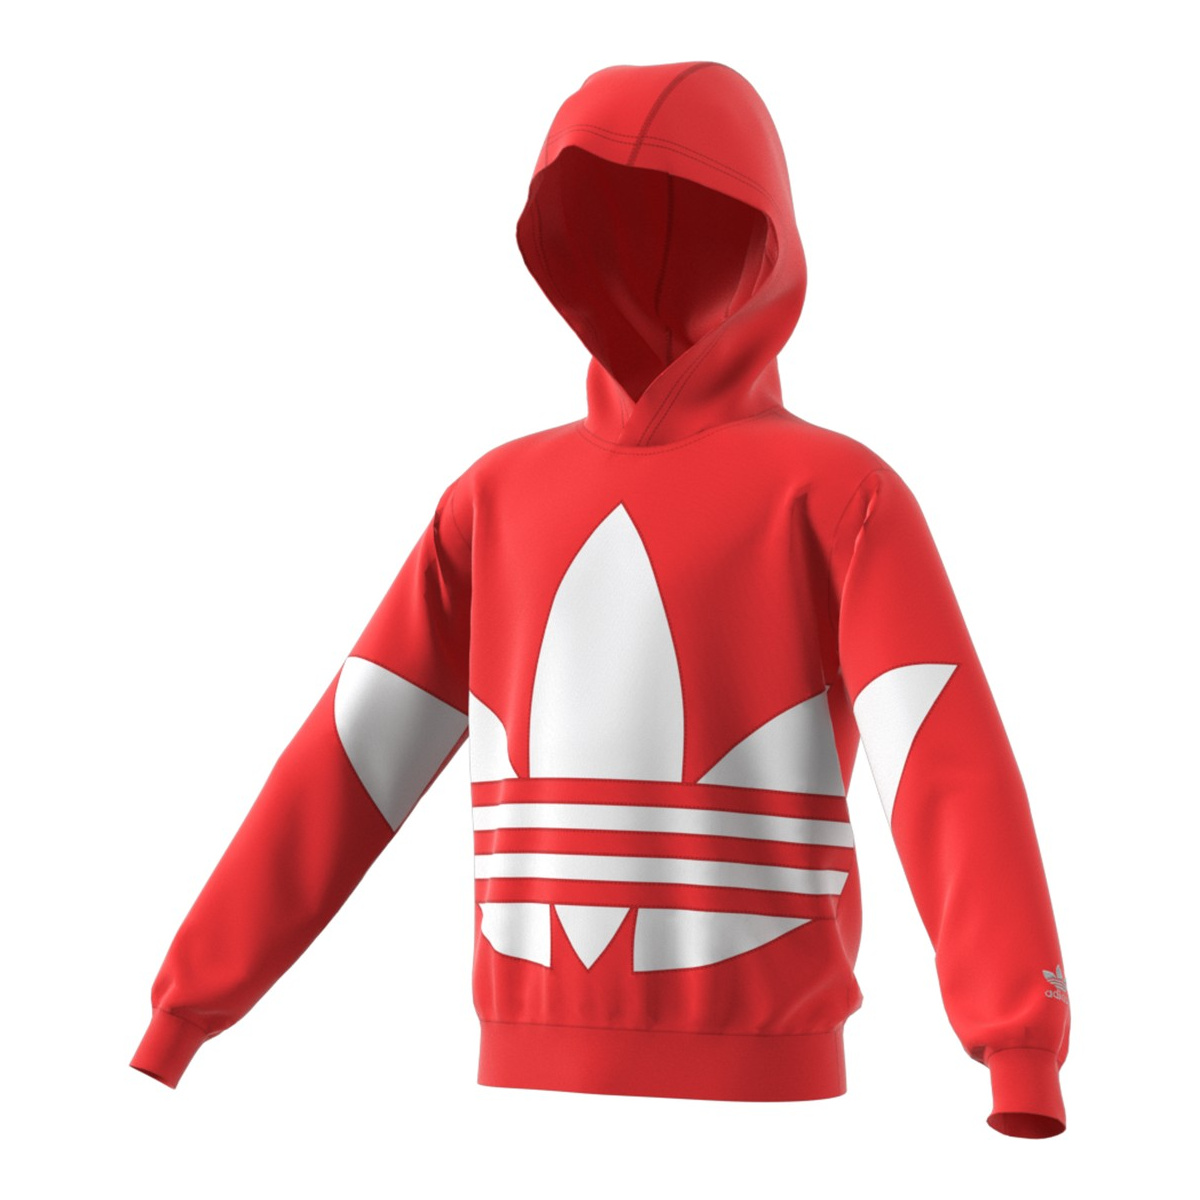 garçon à ADIDAS Sweat capuche rouge ORIGINALS A354jLcqR